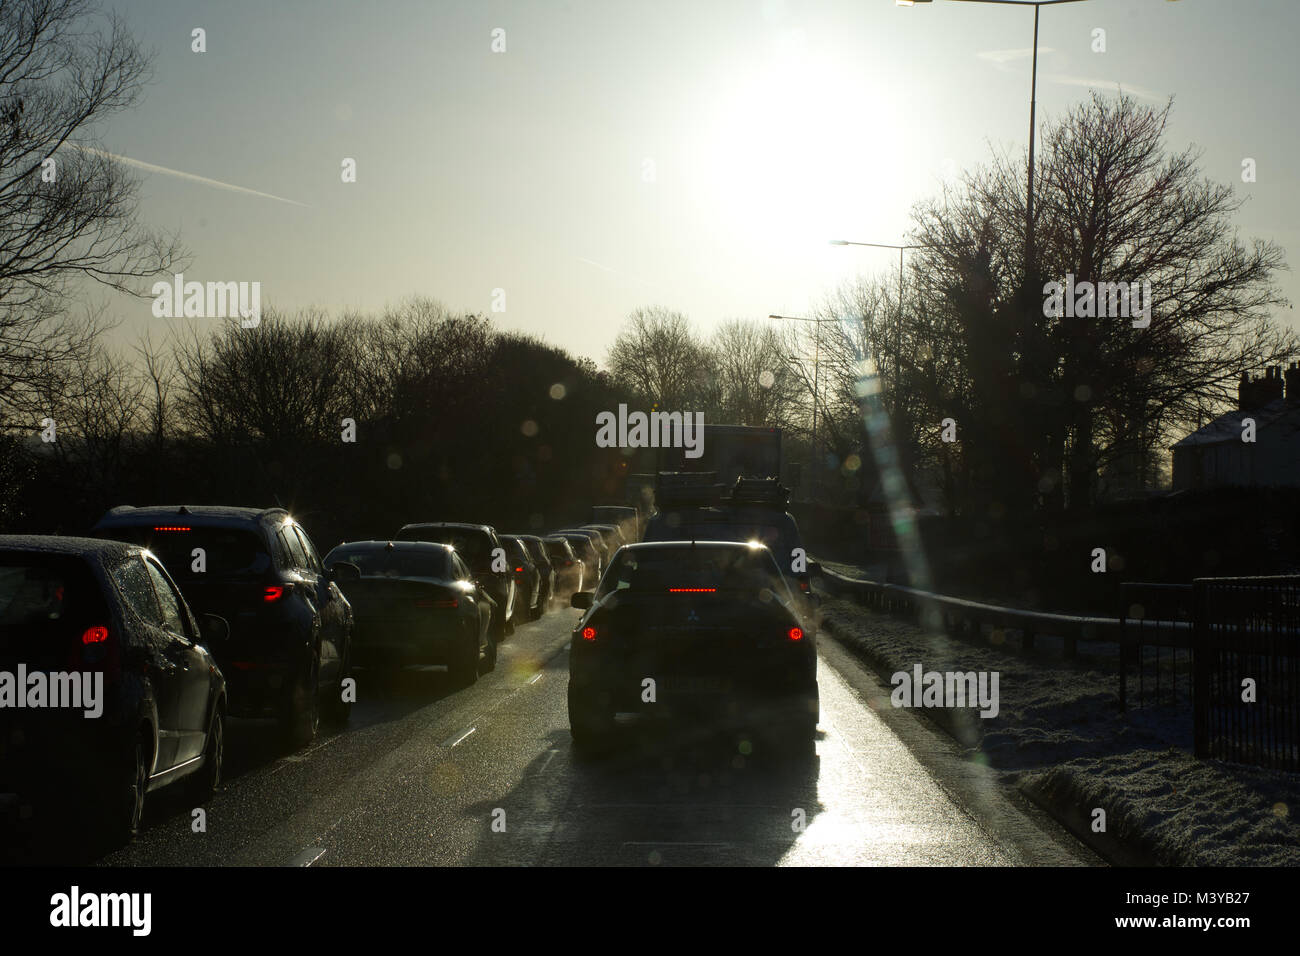 West Midlands, UK.12th Feb, 2018. UK Weather. Icy conditions on Staffordshire roads causing severe delays and disruptions - Stock Image